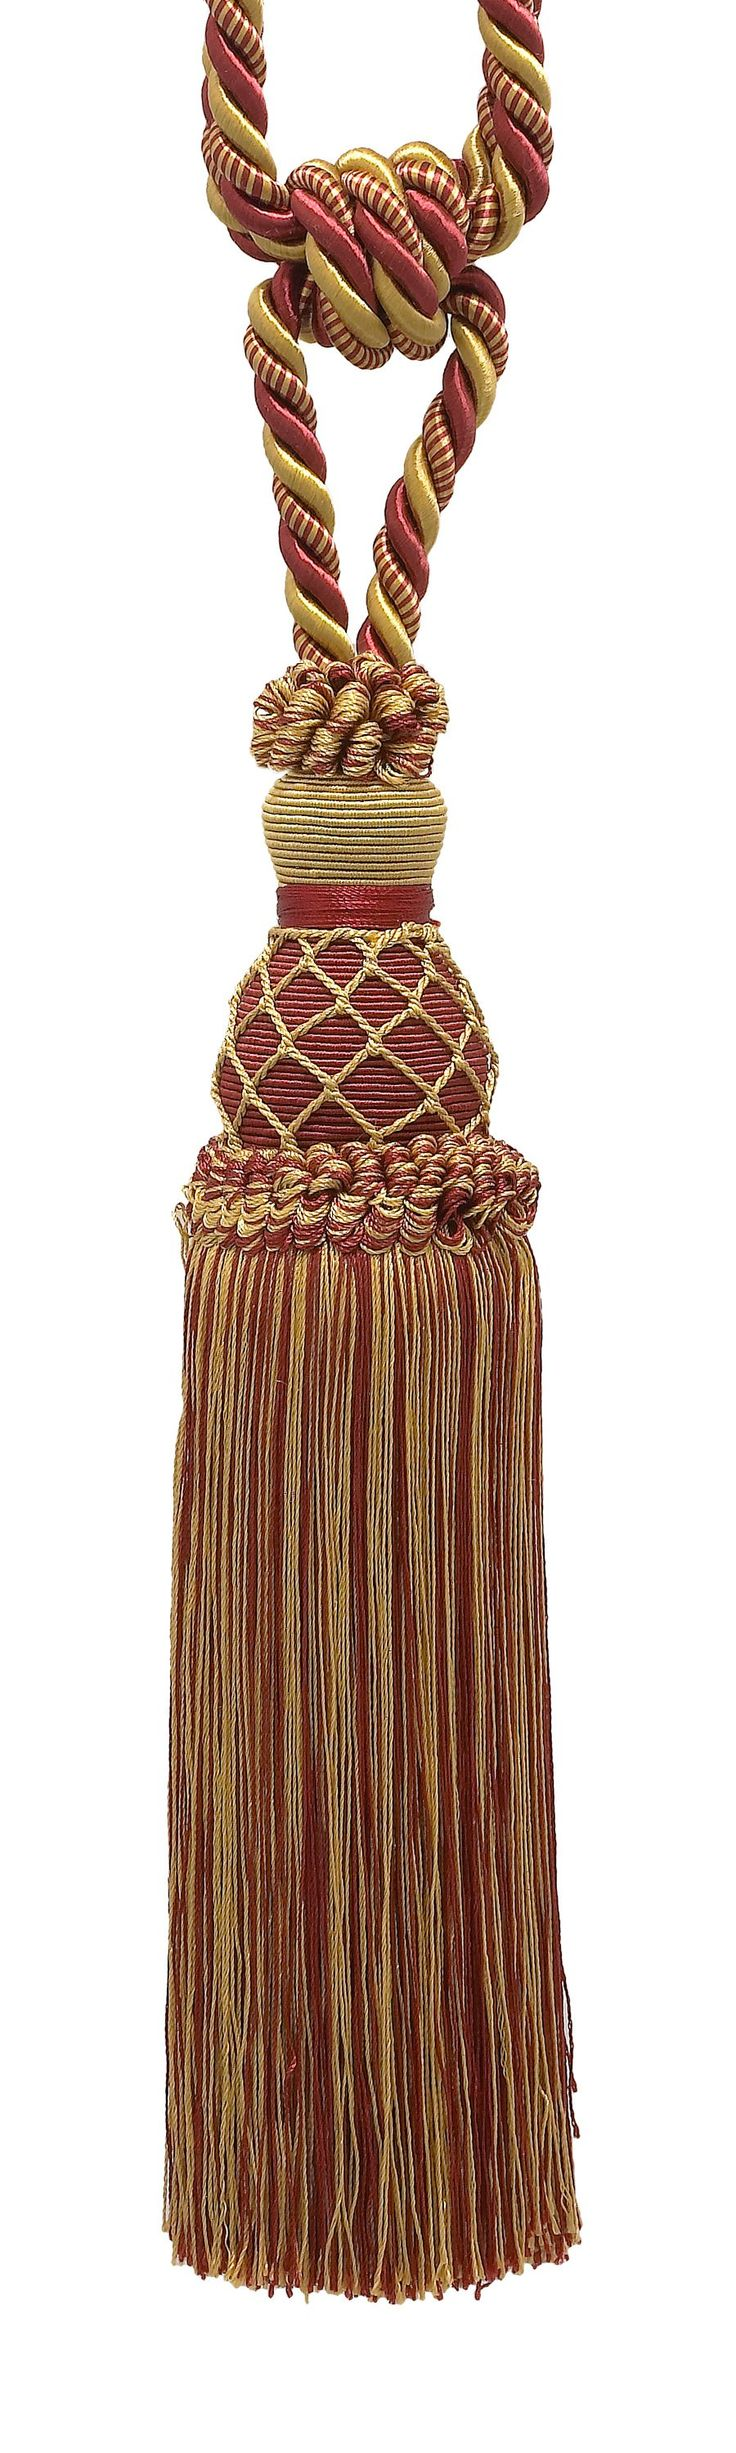 "Elegant Burgundy Red, Gold Curtain & Drapery Tassel Tieback / 10"" tassel, 30 1/2"" Spread (embrace), 3/8"" Cord, Imperial II Collection Style# TBIN-1 Color: BURGUNDY GOLD - 1253"